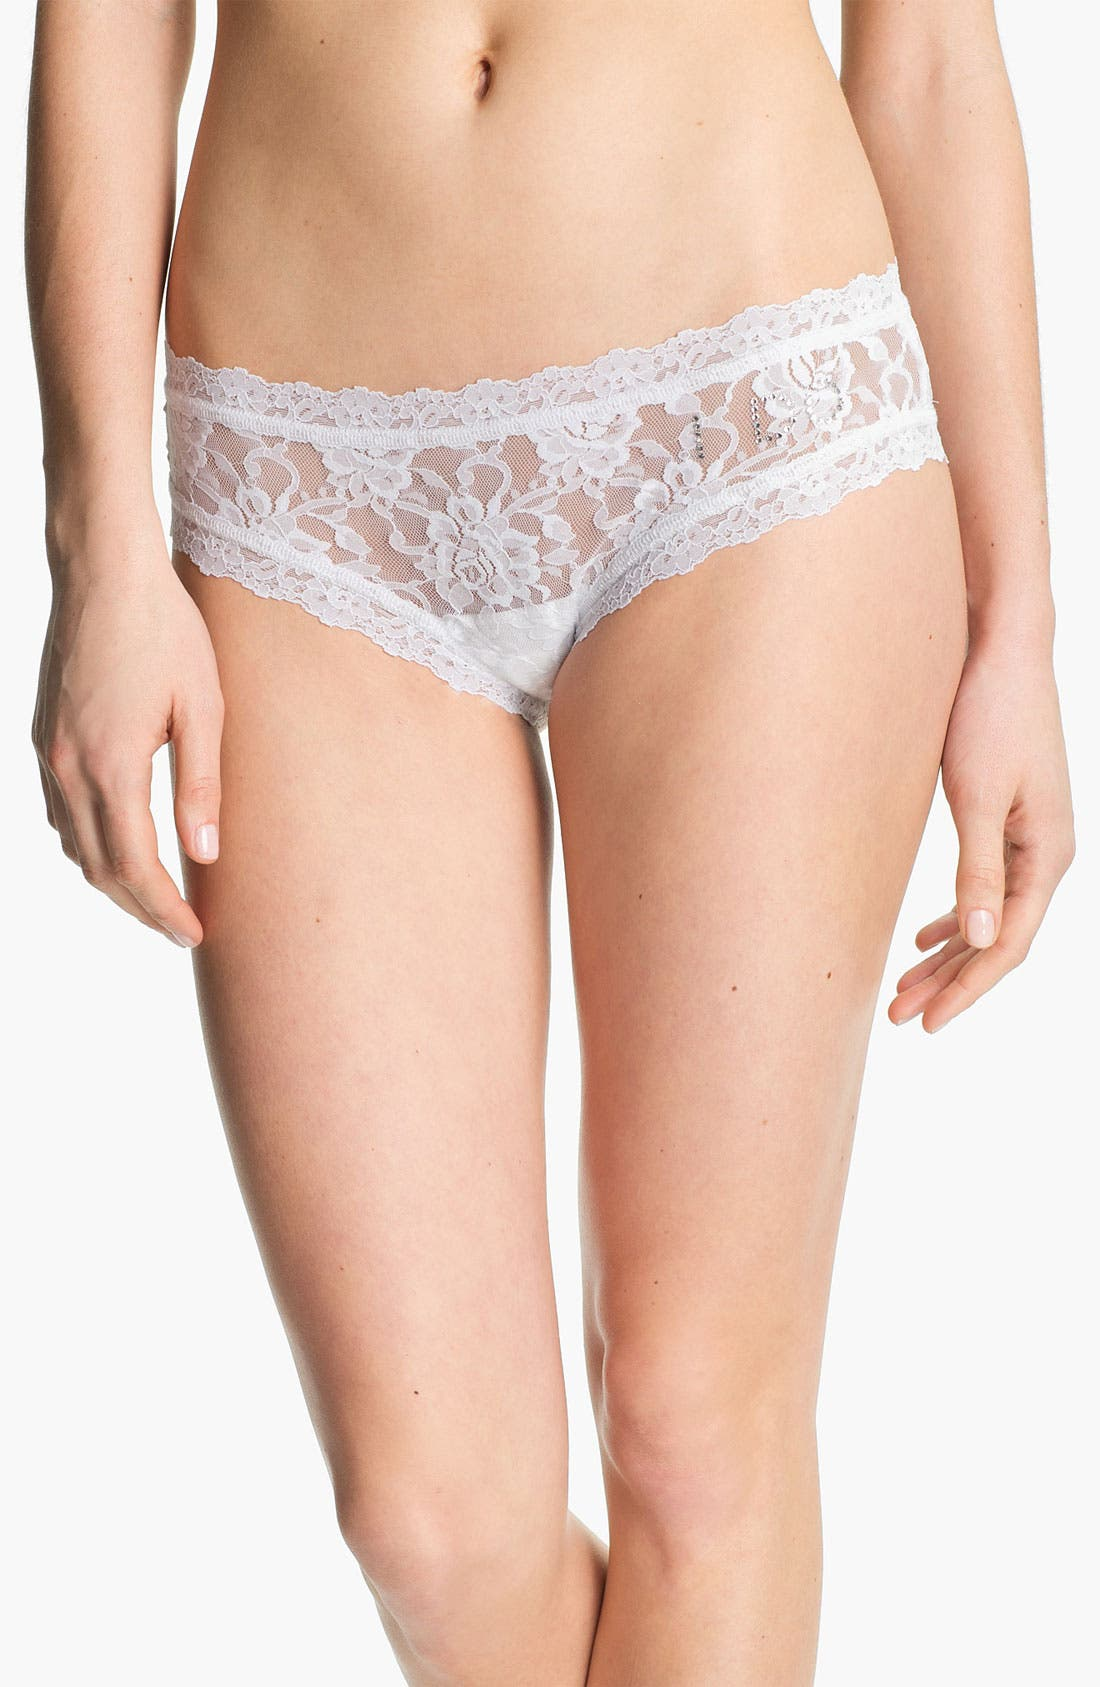 Main Image - Hanky Panky 'I Do' Swarovski Crystal Cheeky Hipster Briefs